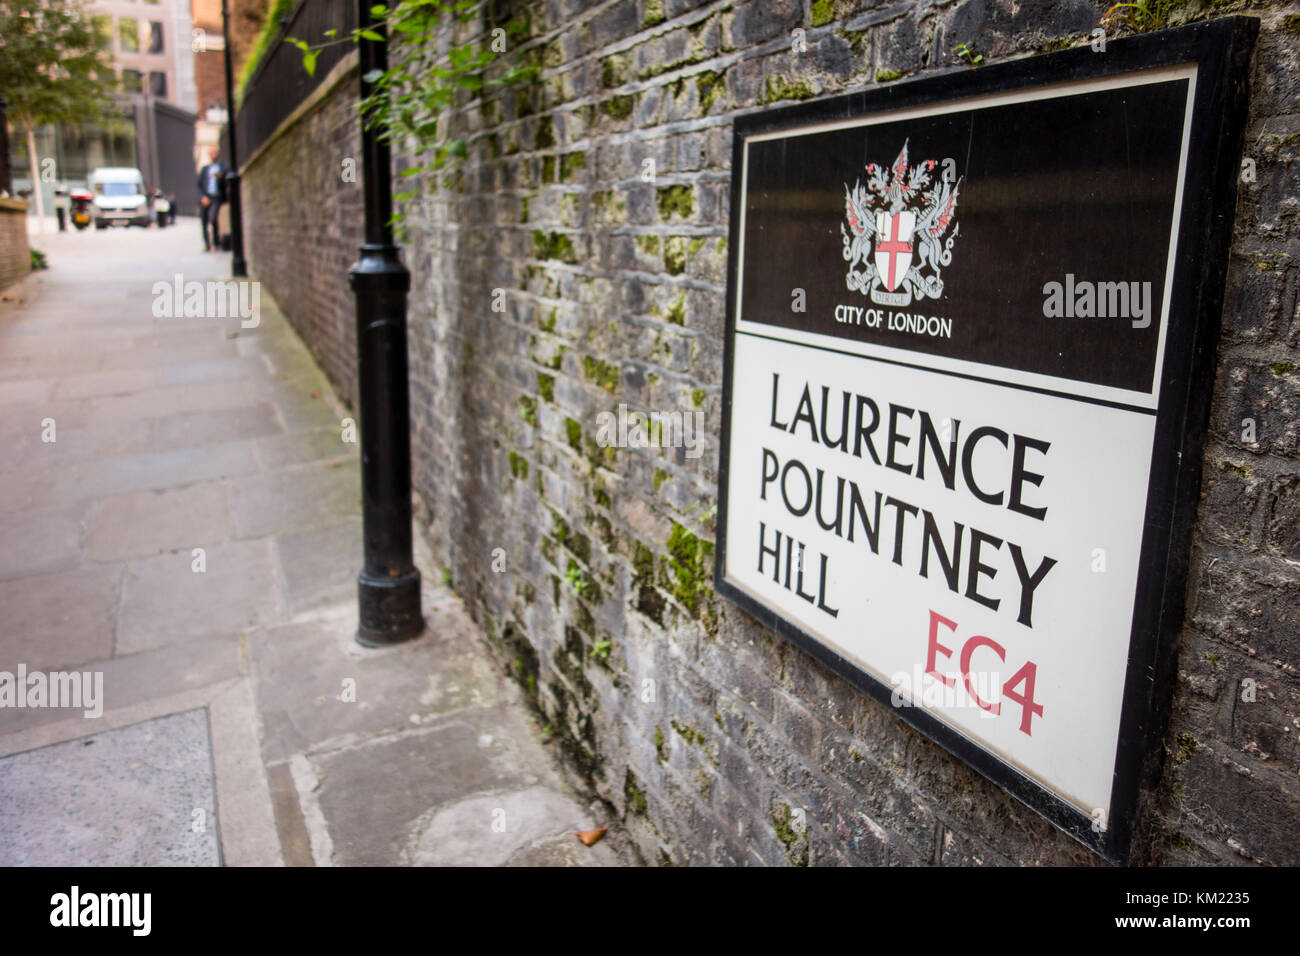 Street sign for Laurence Pountney Hill, City of London, UK - Stock Image